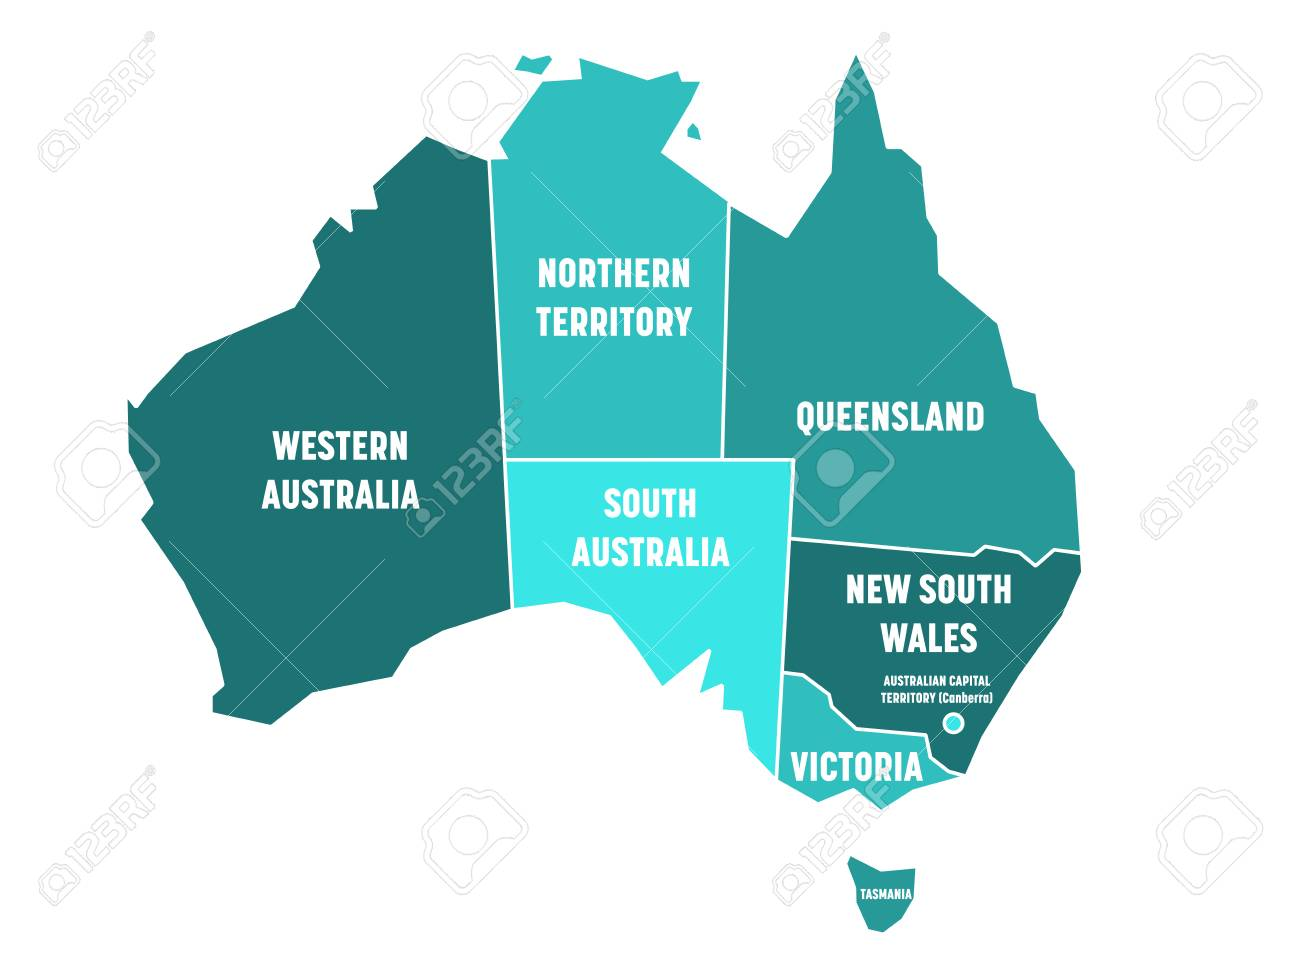 Map Of States Of Australia.Simplified Map Of Australia Divided Into States And Territories